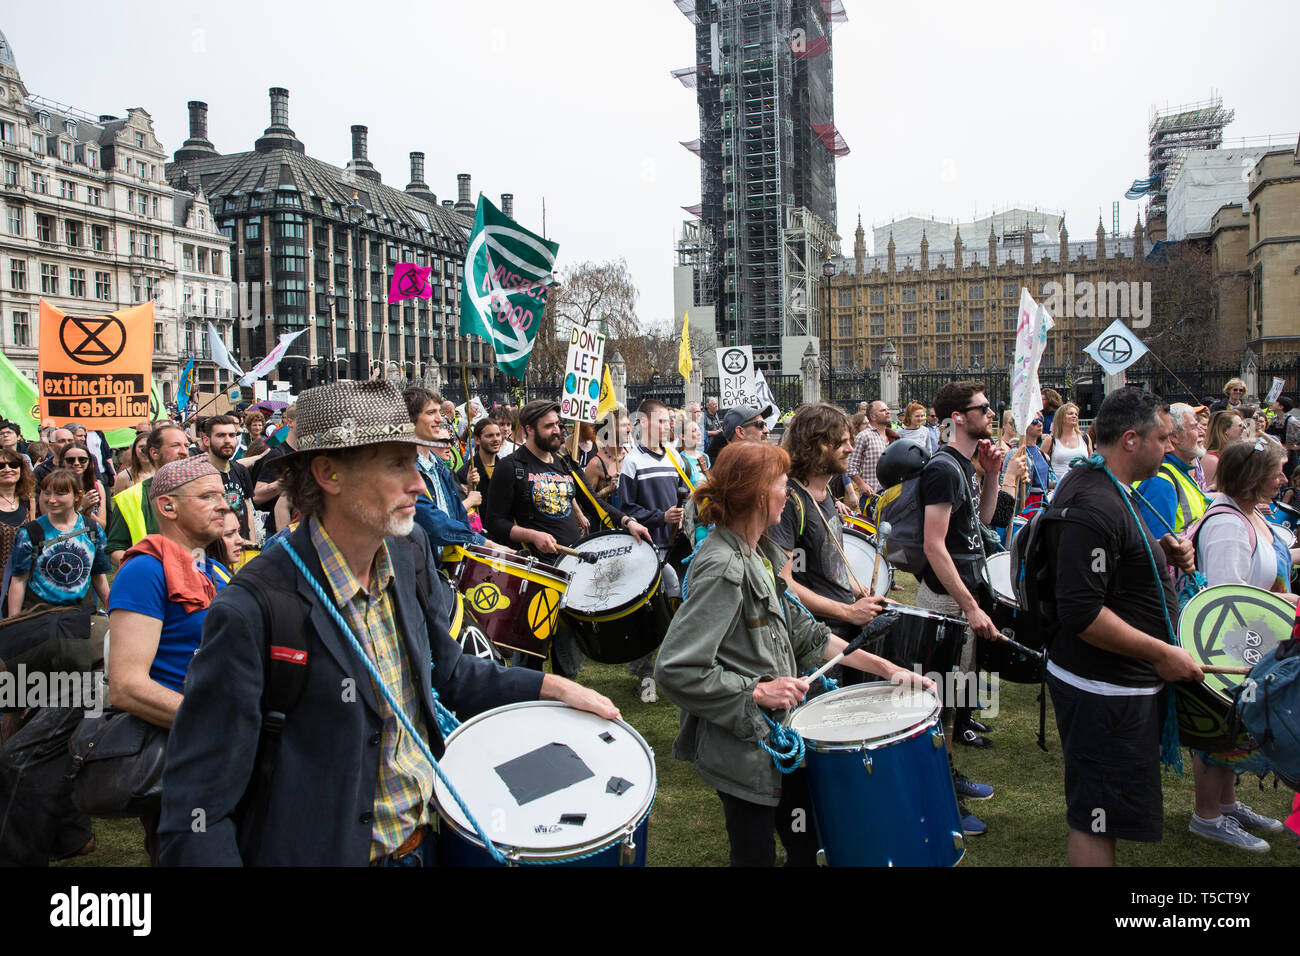 London, UK. 23rd April 2019. The XR Samba Band marches into Parliament Square with fellow climate change activists from Extinction Rebellion for an assembly and the preparation of letters requesting meetings with Members of Parliament. Credit: Mark Kerrison/Alamy Live News - Stock Image